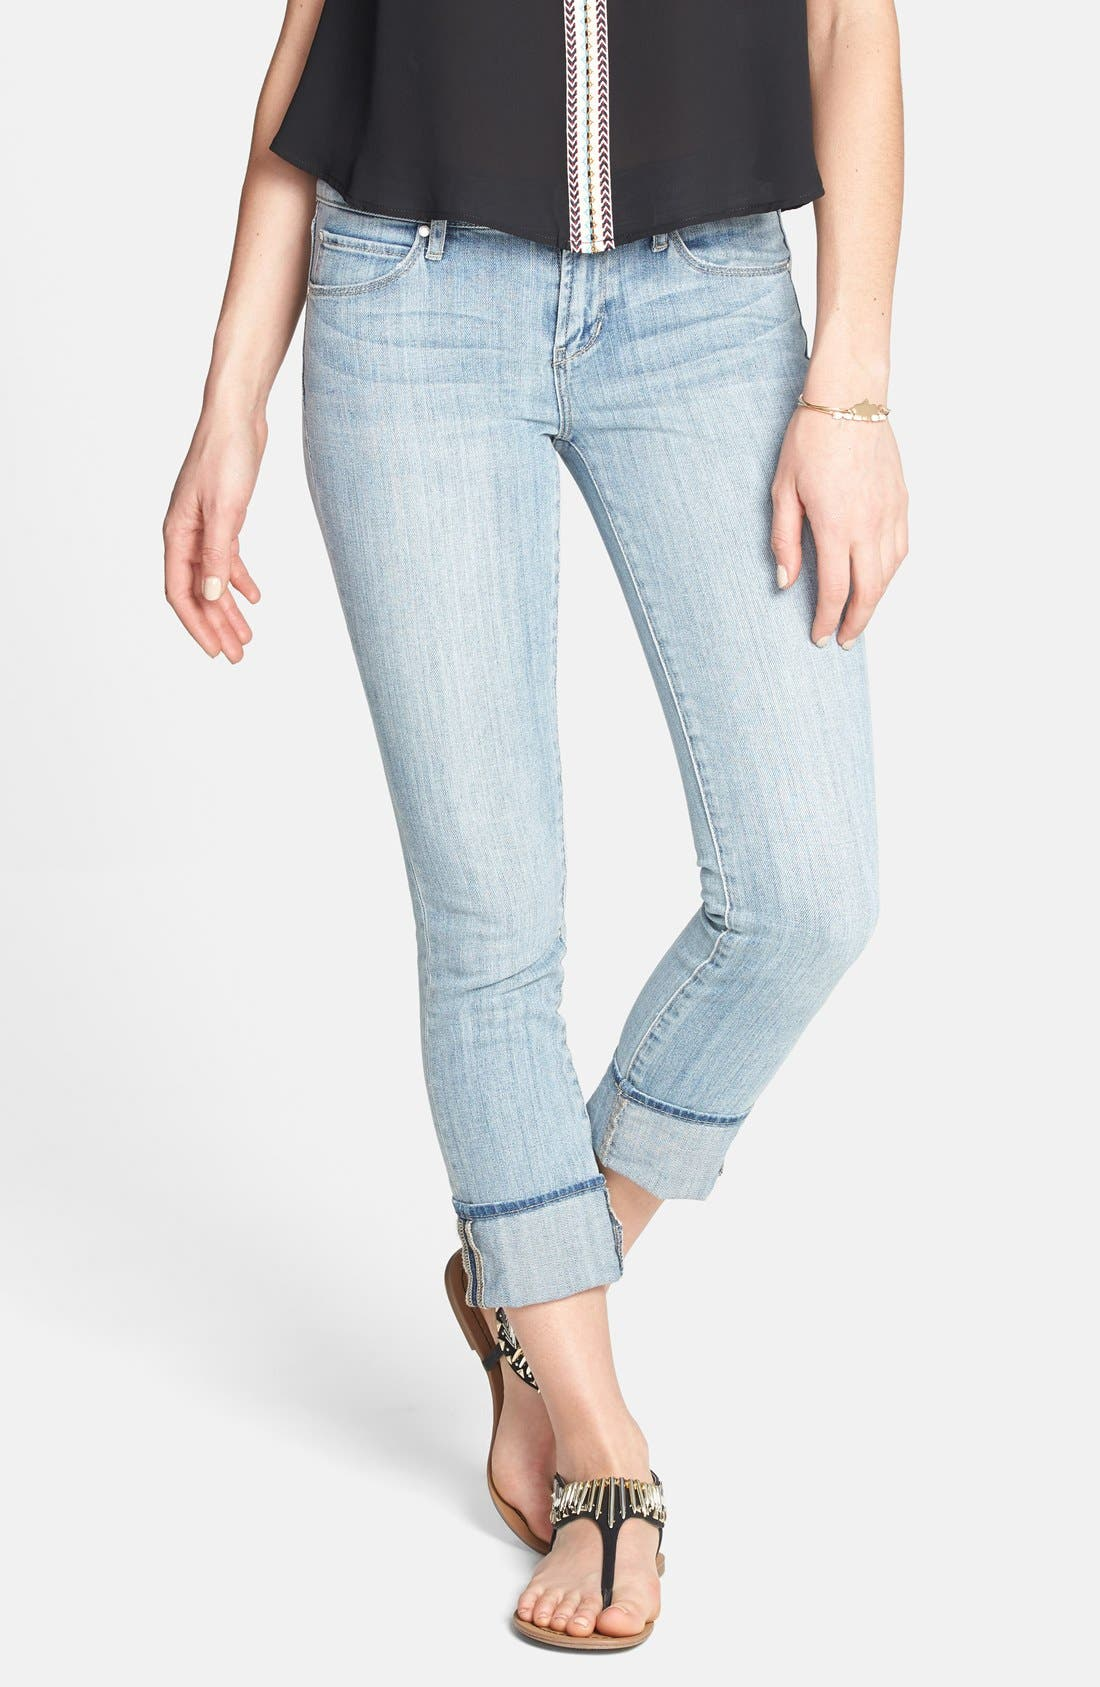 Alternate Image 1 Selected - Articles of Society 'Zoey' Crop Skinny Jeans (Light) (Juniors)